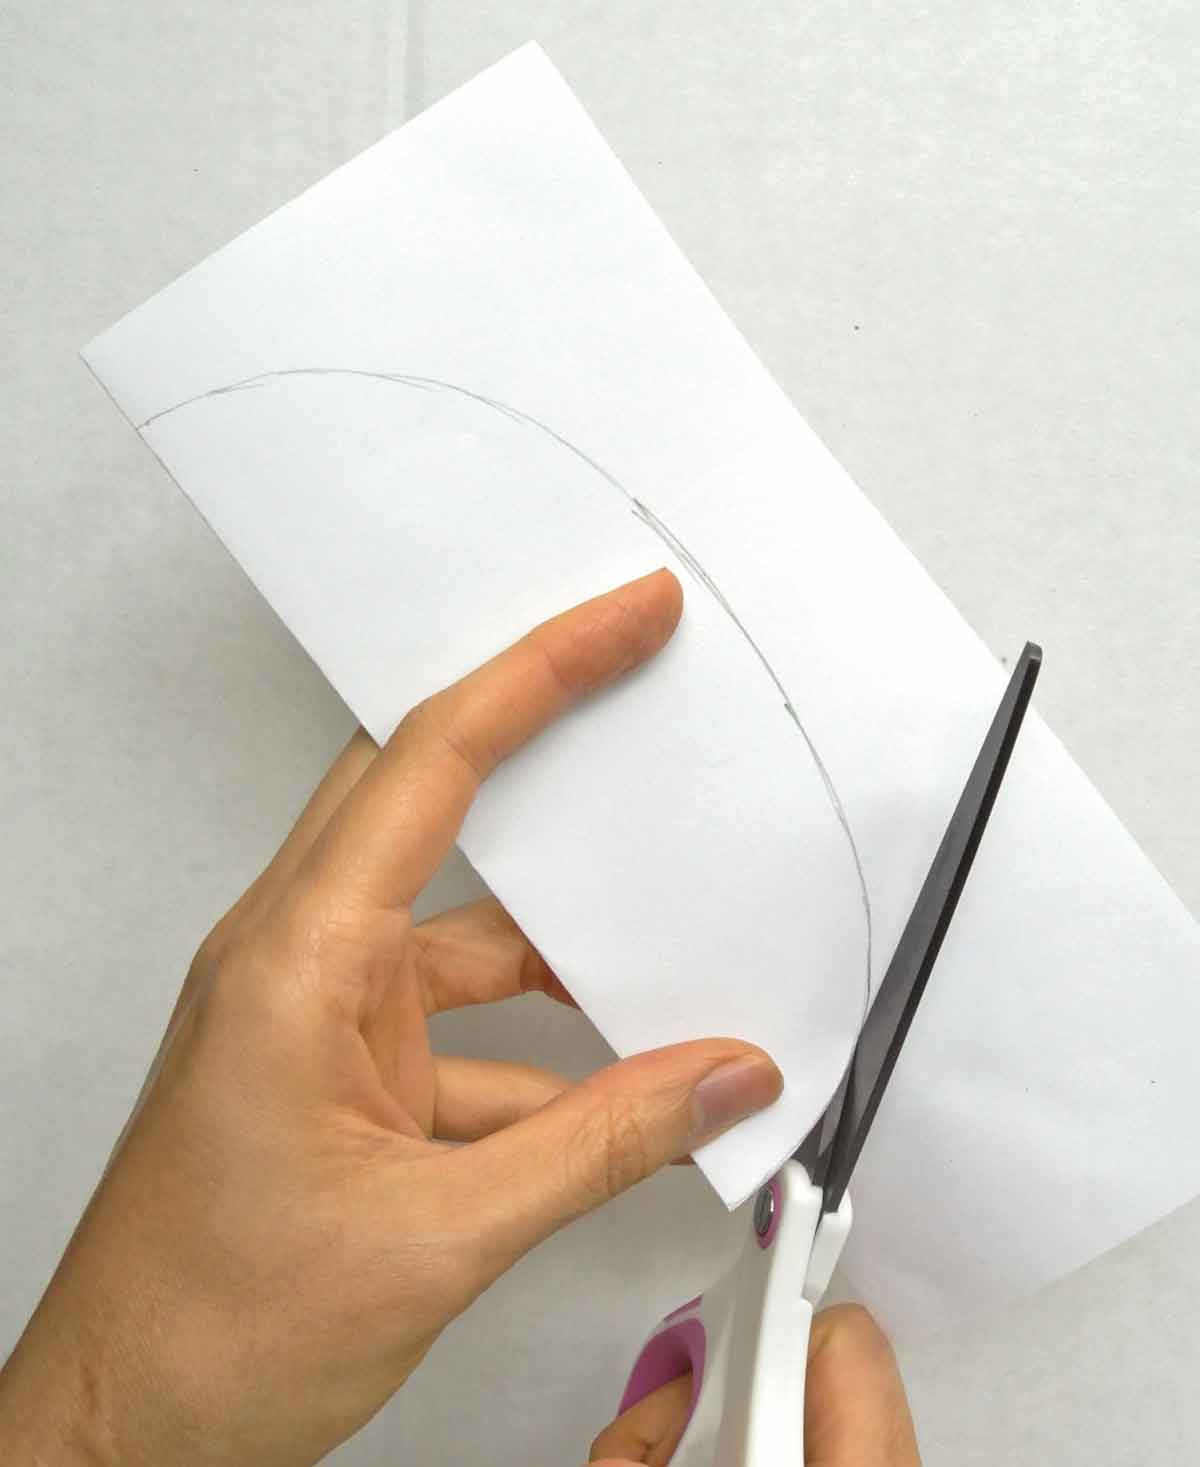 Cutting bear belly (accessory pattern) on fold of paper with scissors. How to Make Plushie Tutorial